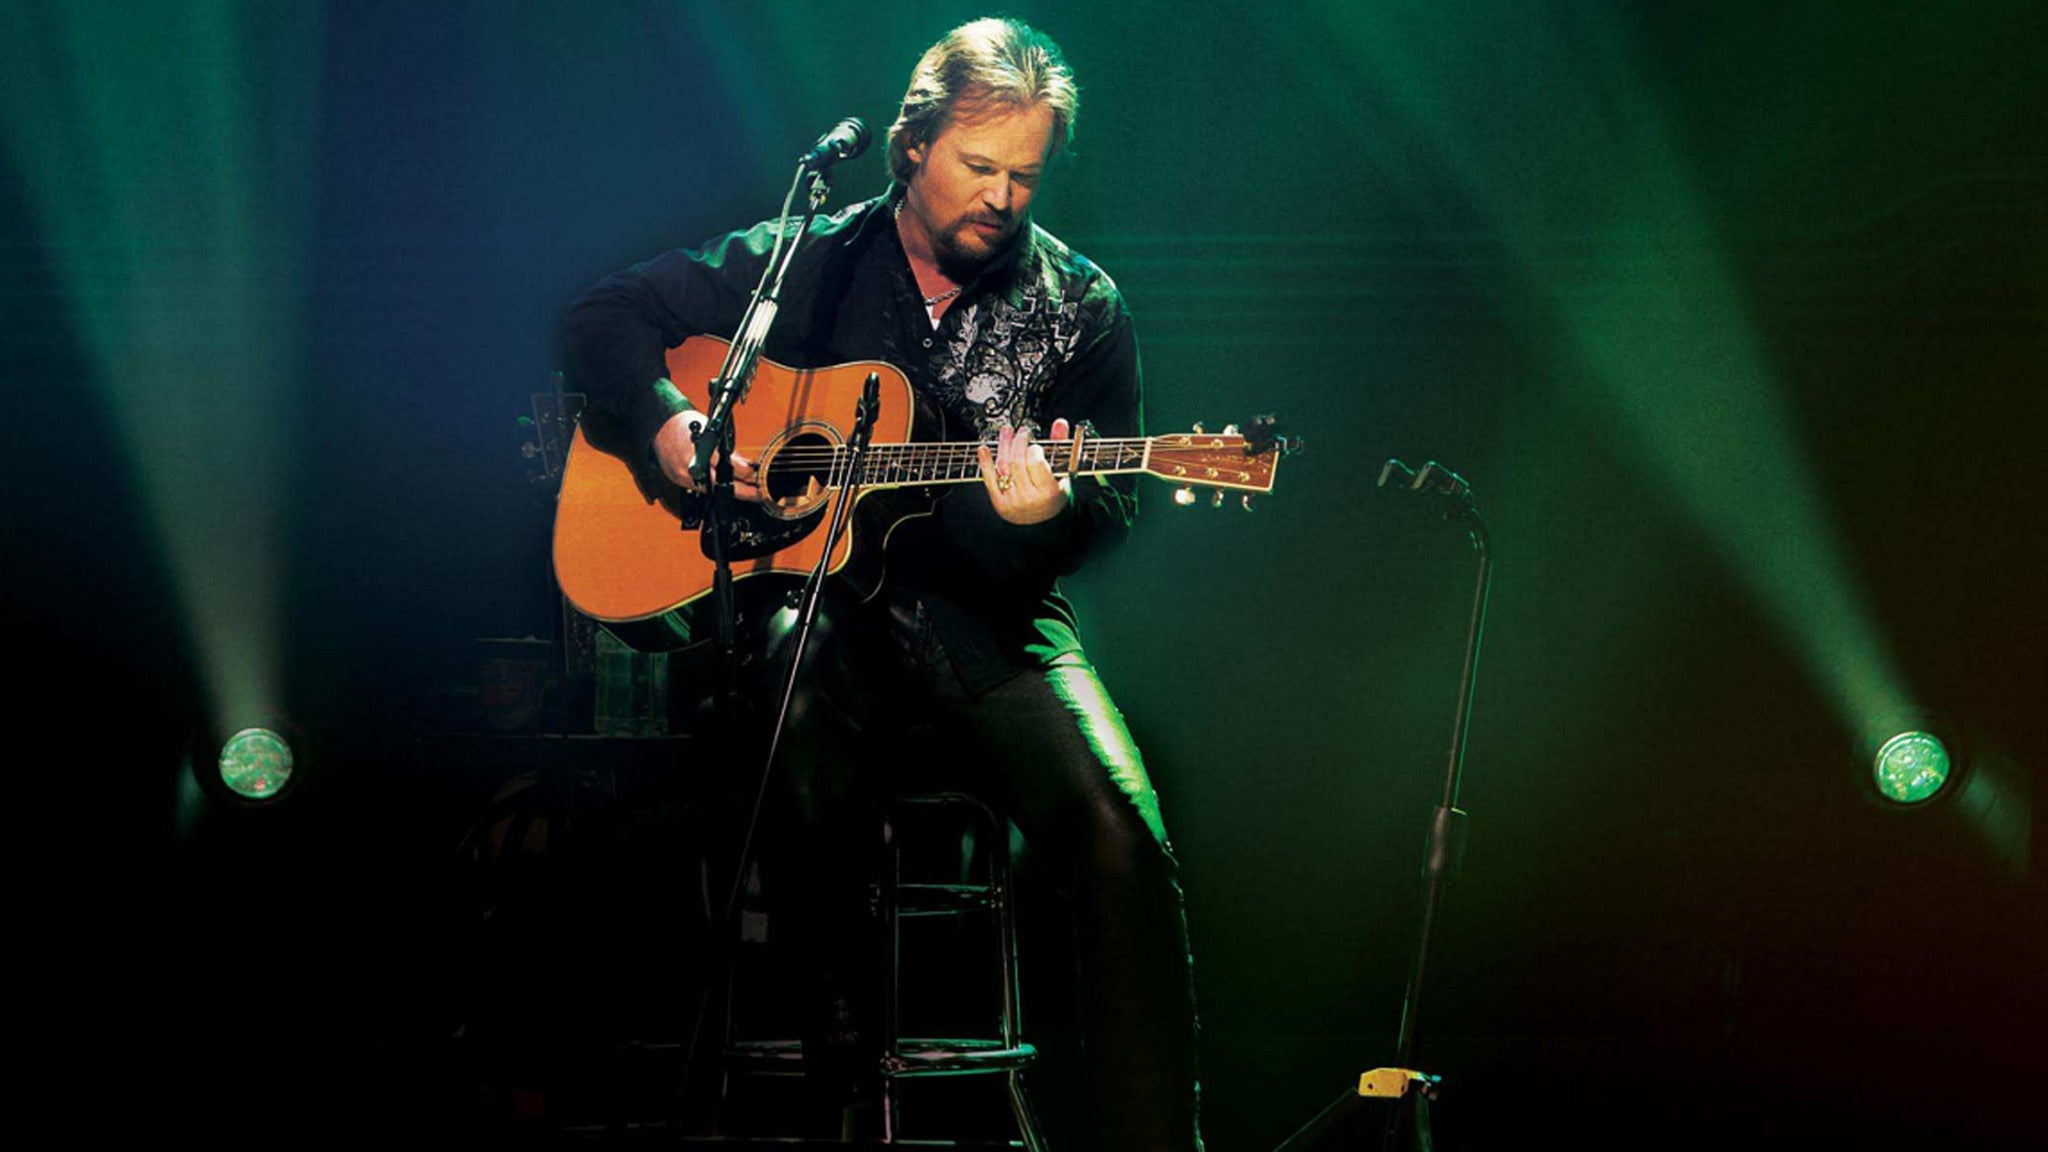 Travis Tritt at Cerritos Center